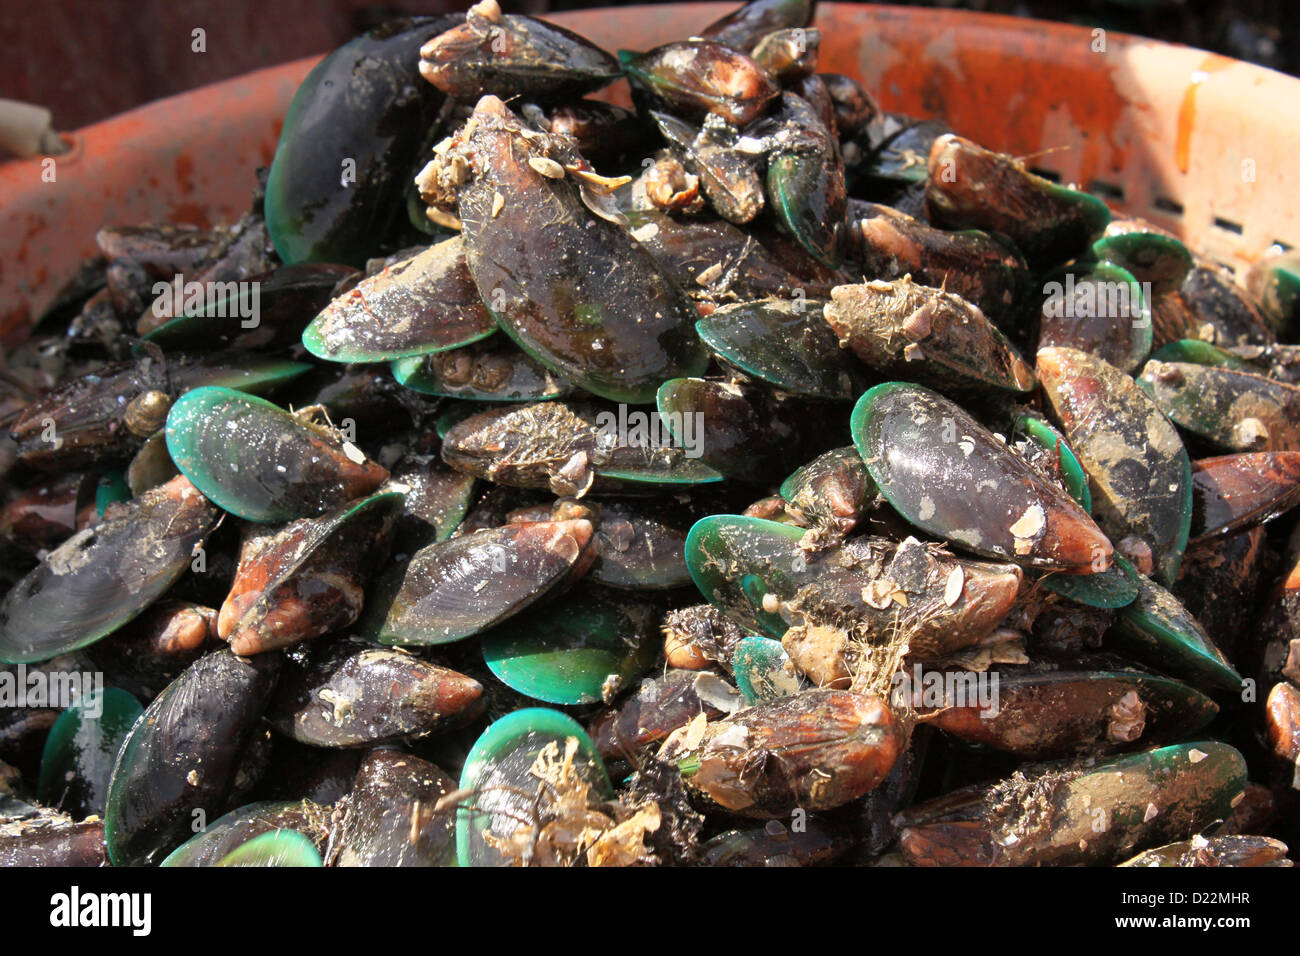 Harvested Asian green Sea Mussels - Stock Image